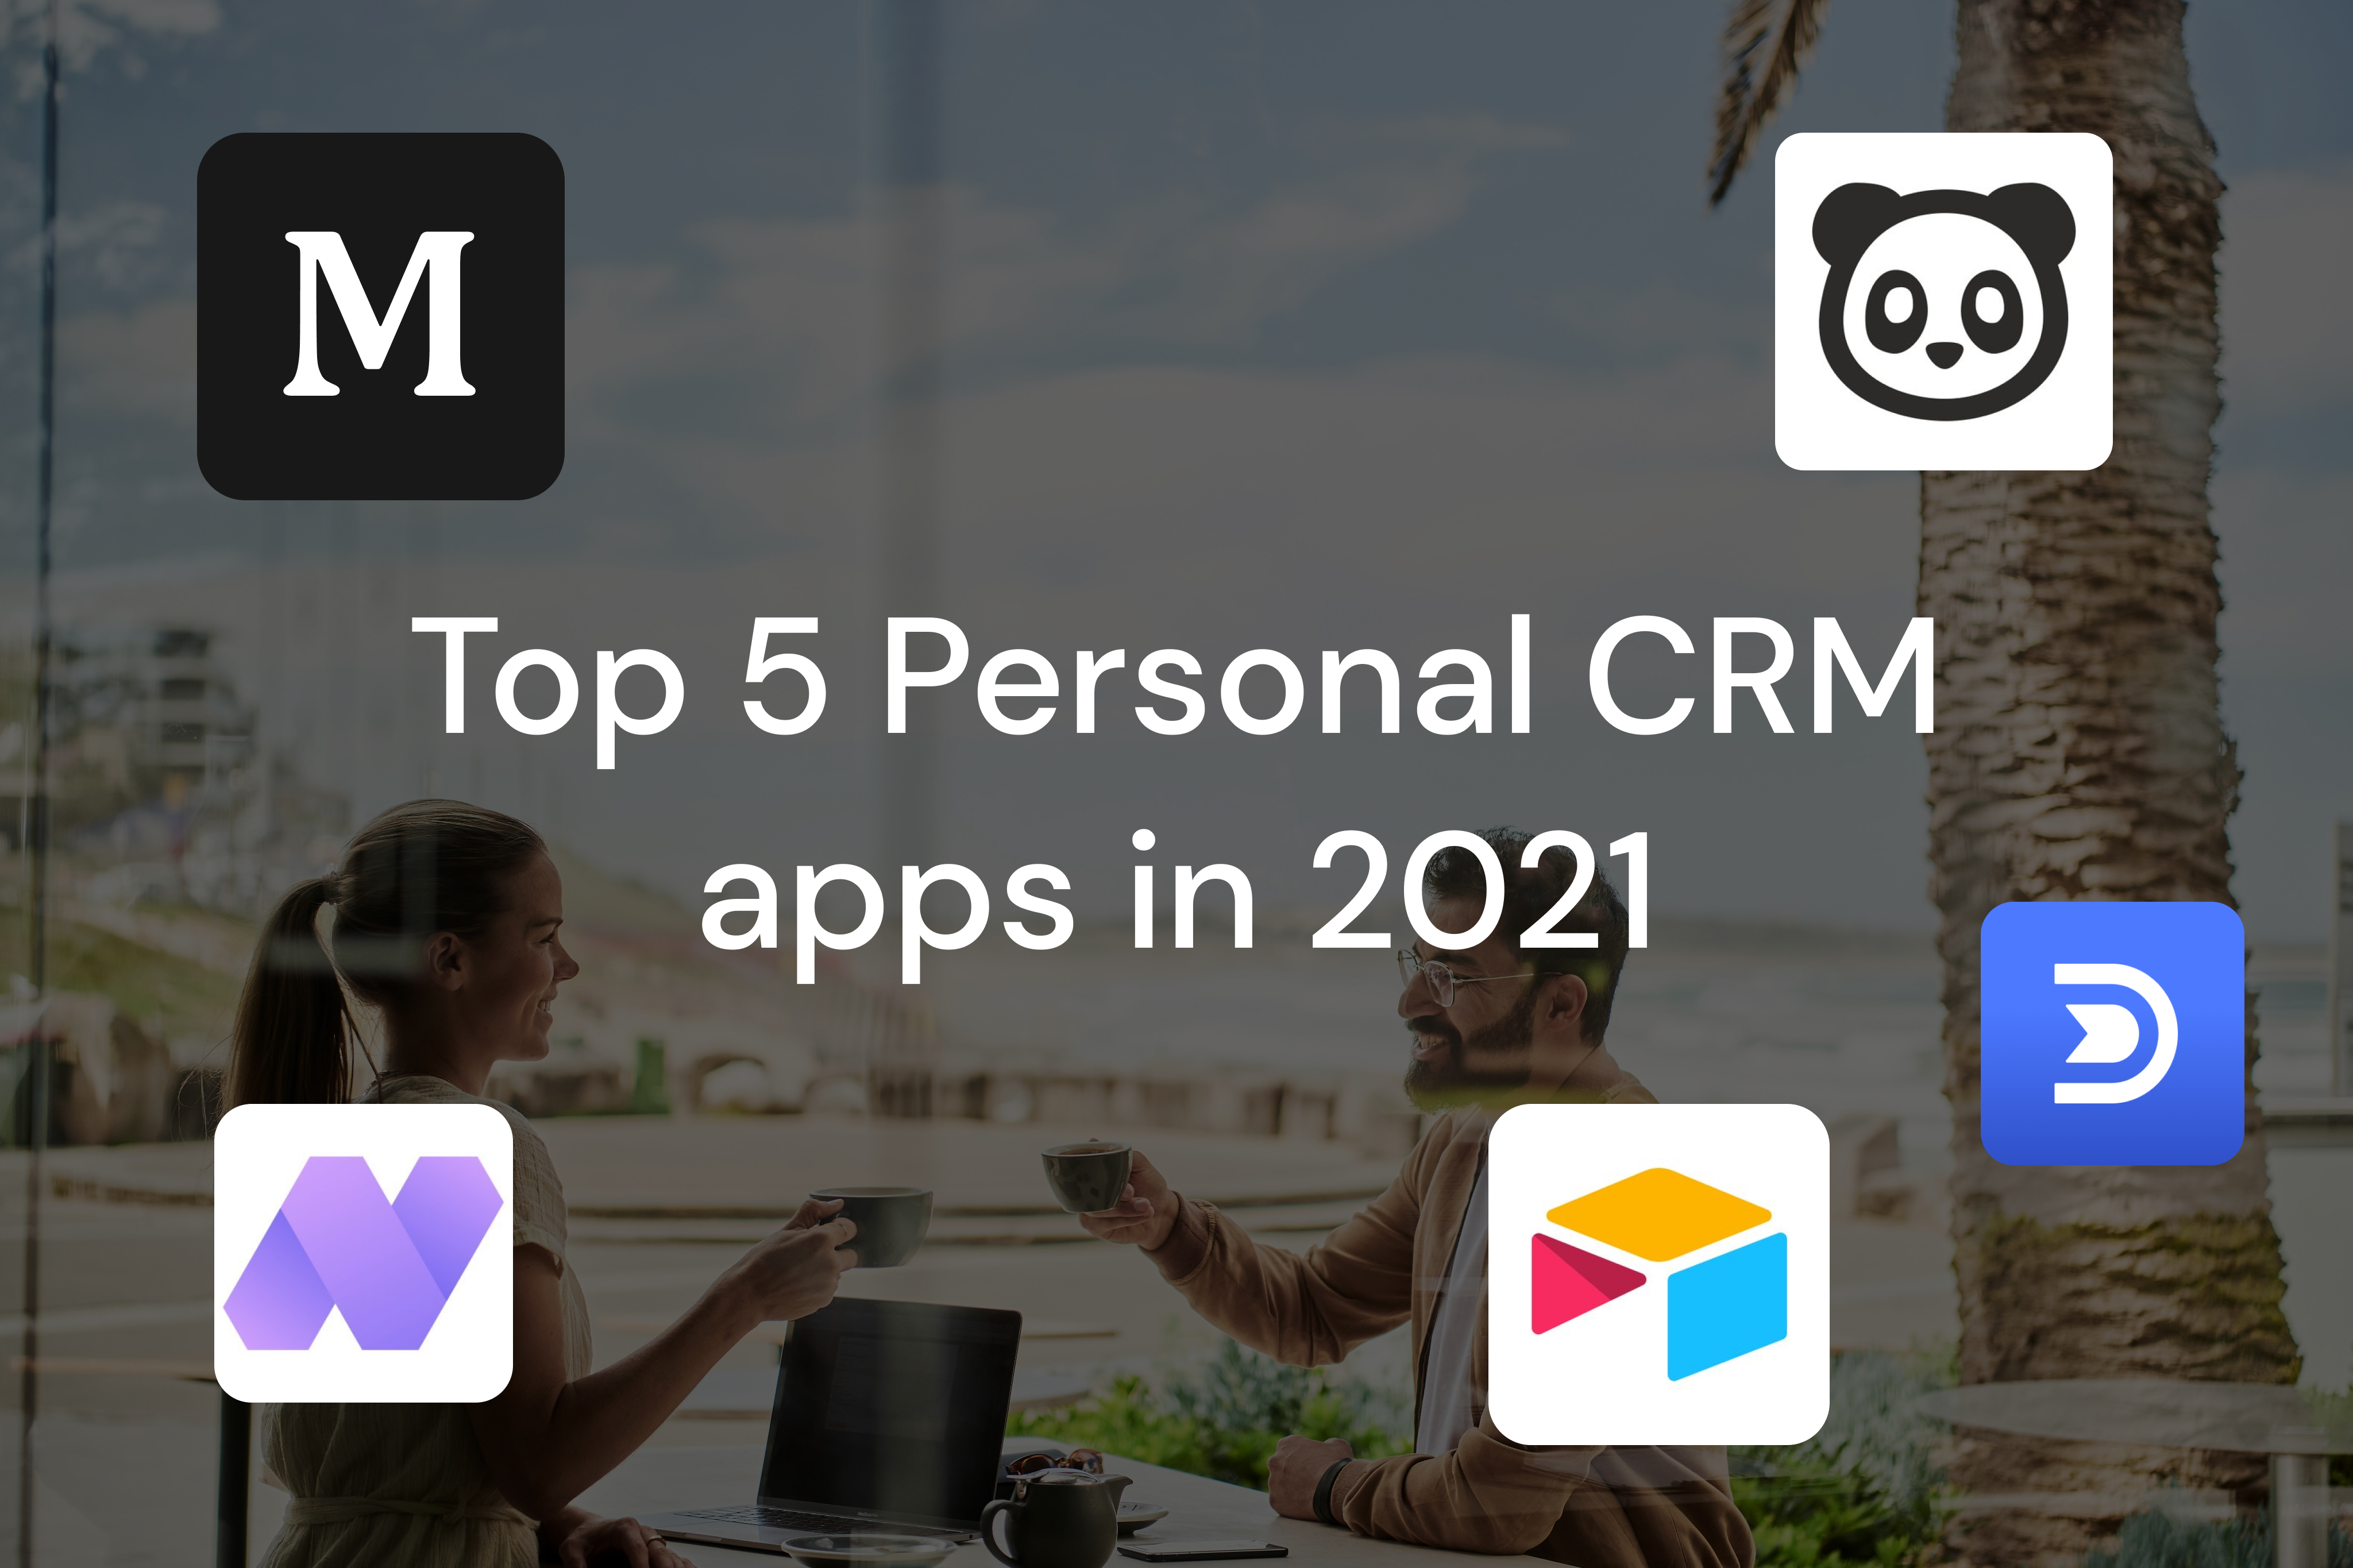 Top 5 Personal CRM apps in 2021 (pros, cons and pricing)